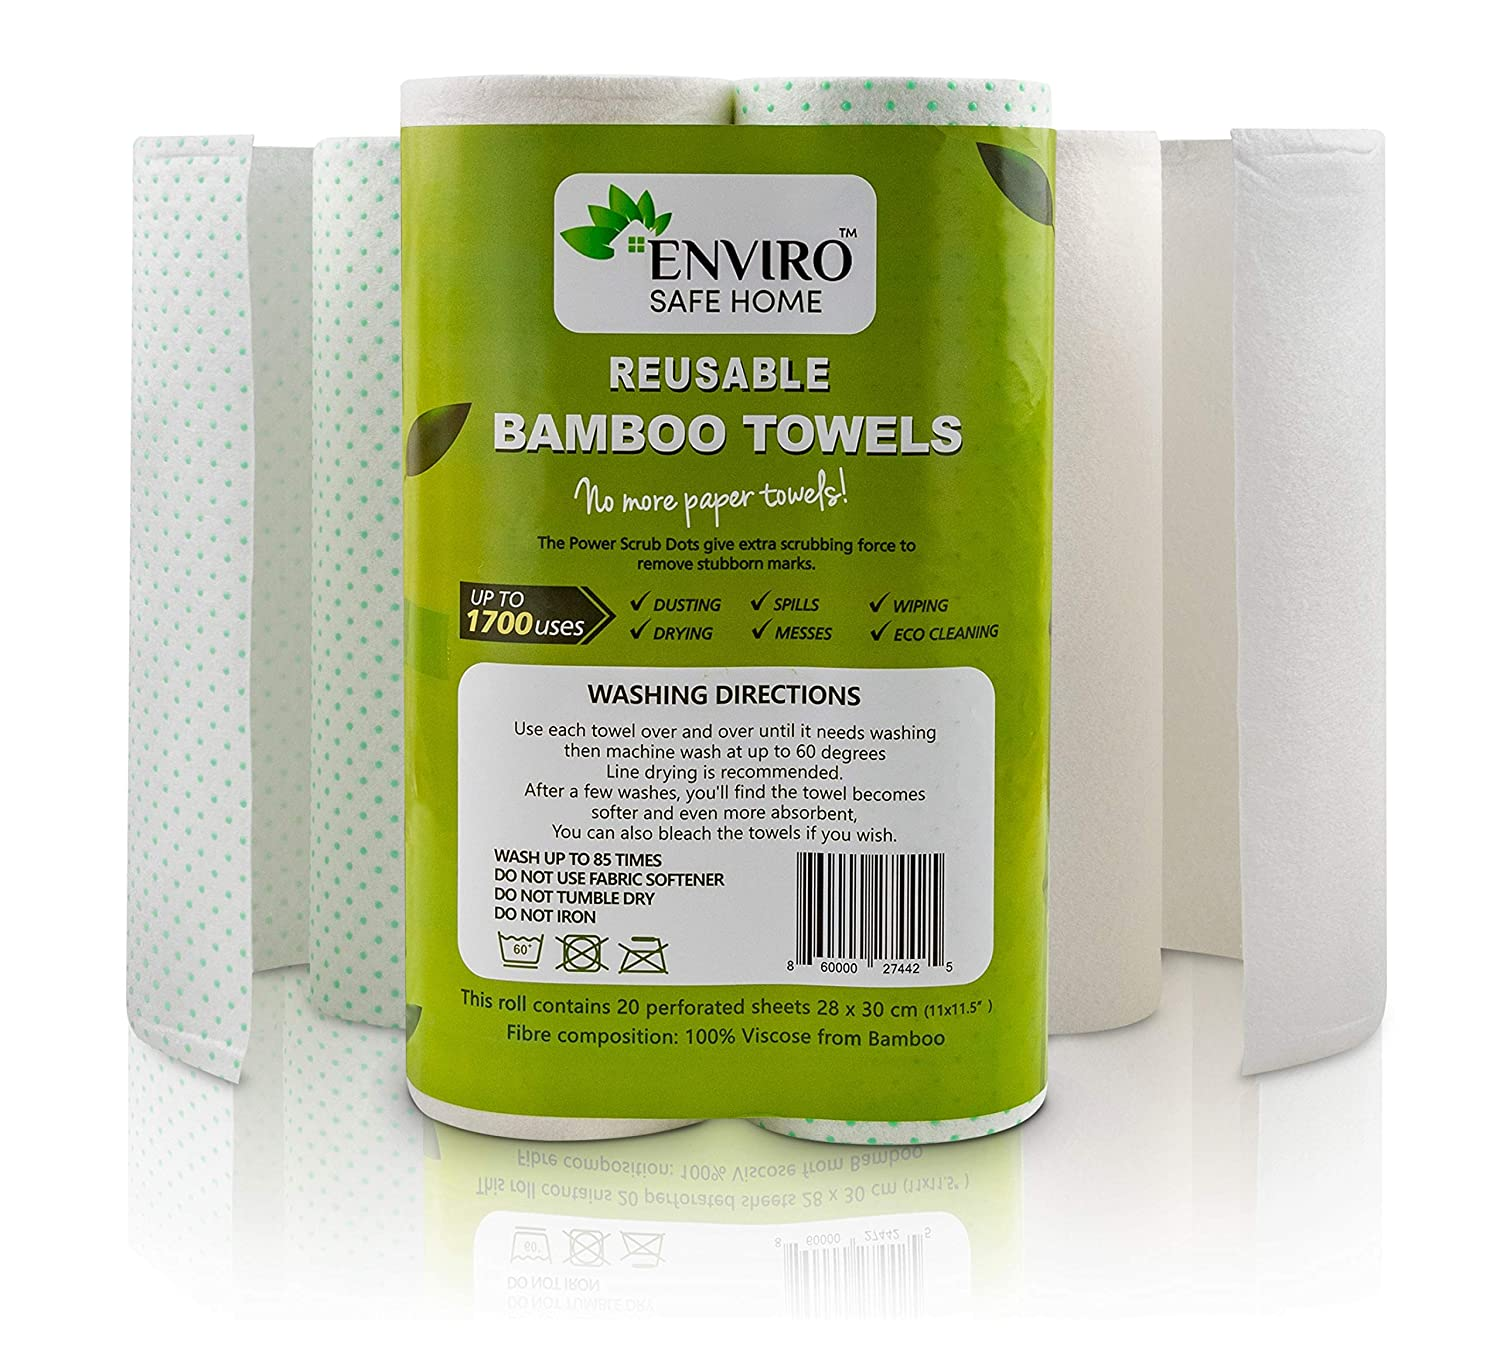 eco friendly 2 Ply Fabric Paper Towels 12 Piece Set No waste Red Tartan Plaid